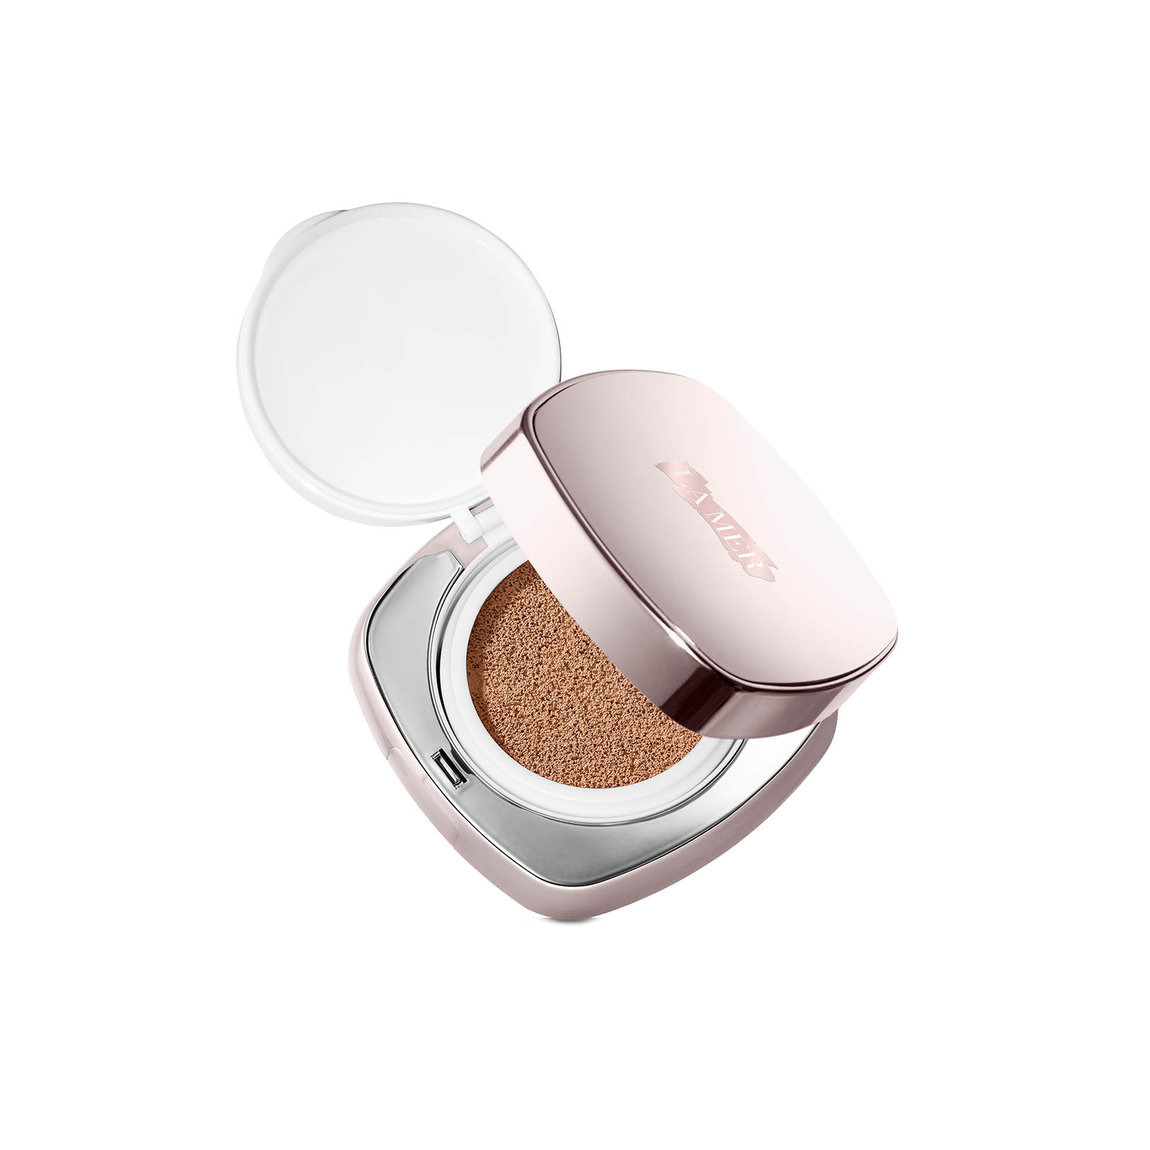 La Mer The Luminous Lifting Cushion Compact Broad Spectrum SPF 20 Beige Nude